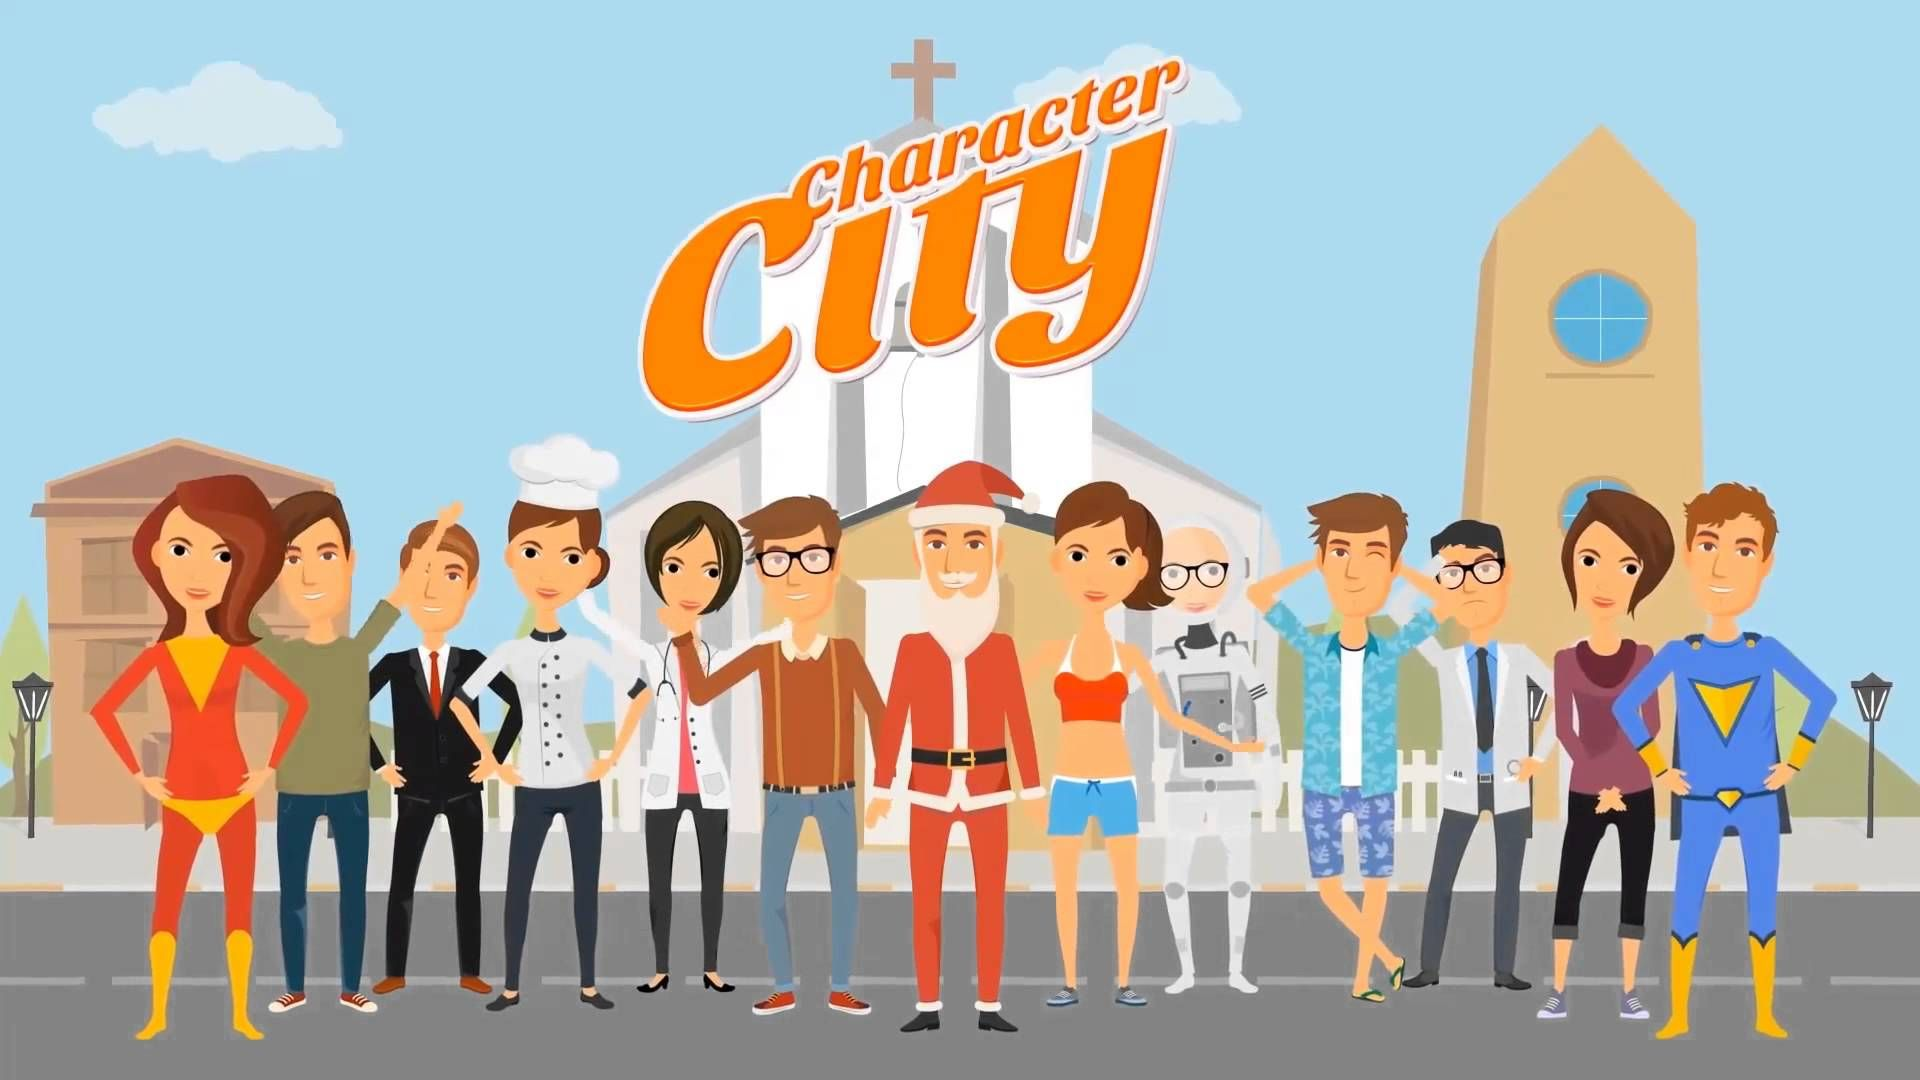 Character City V Explainer Video ToolKit After Effect Templates - Explainer video templates